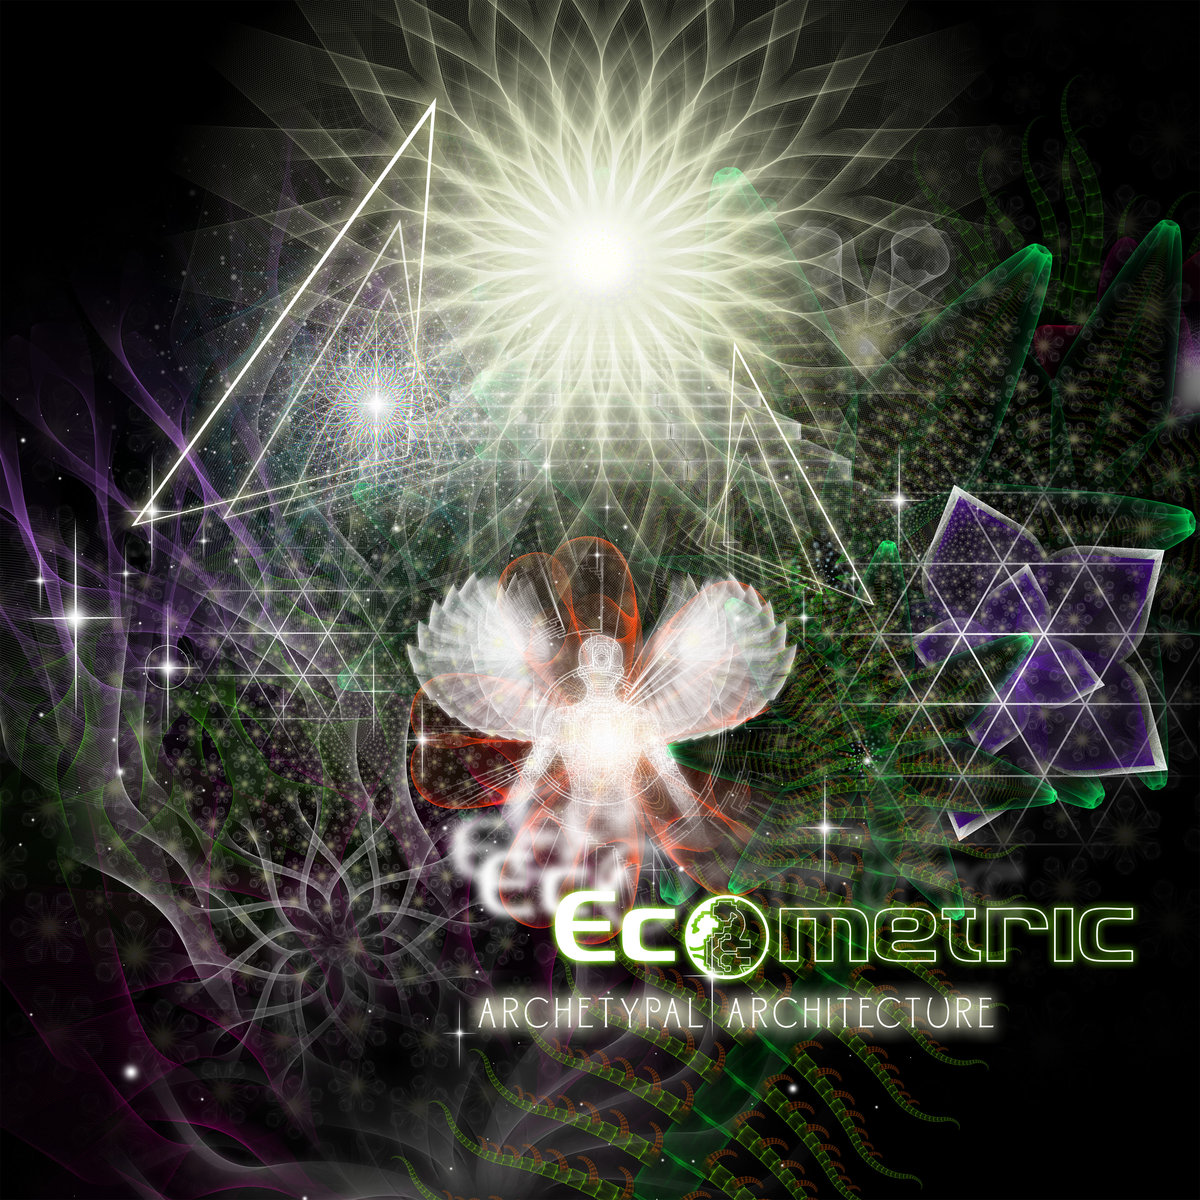 Ecometric - Blackberry @ 'Archetypal Architecture' album (424hz, electronic)